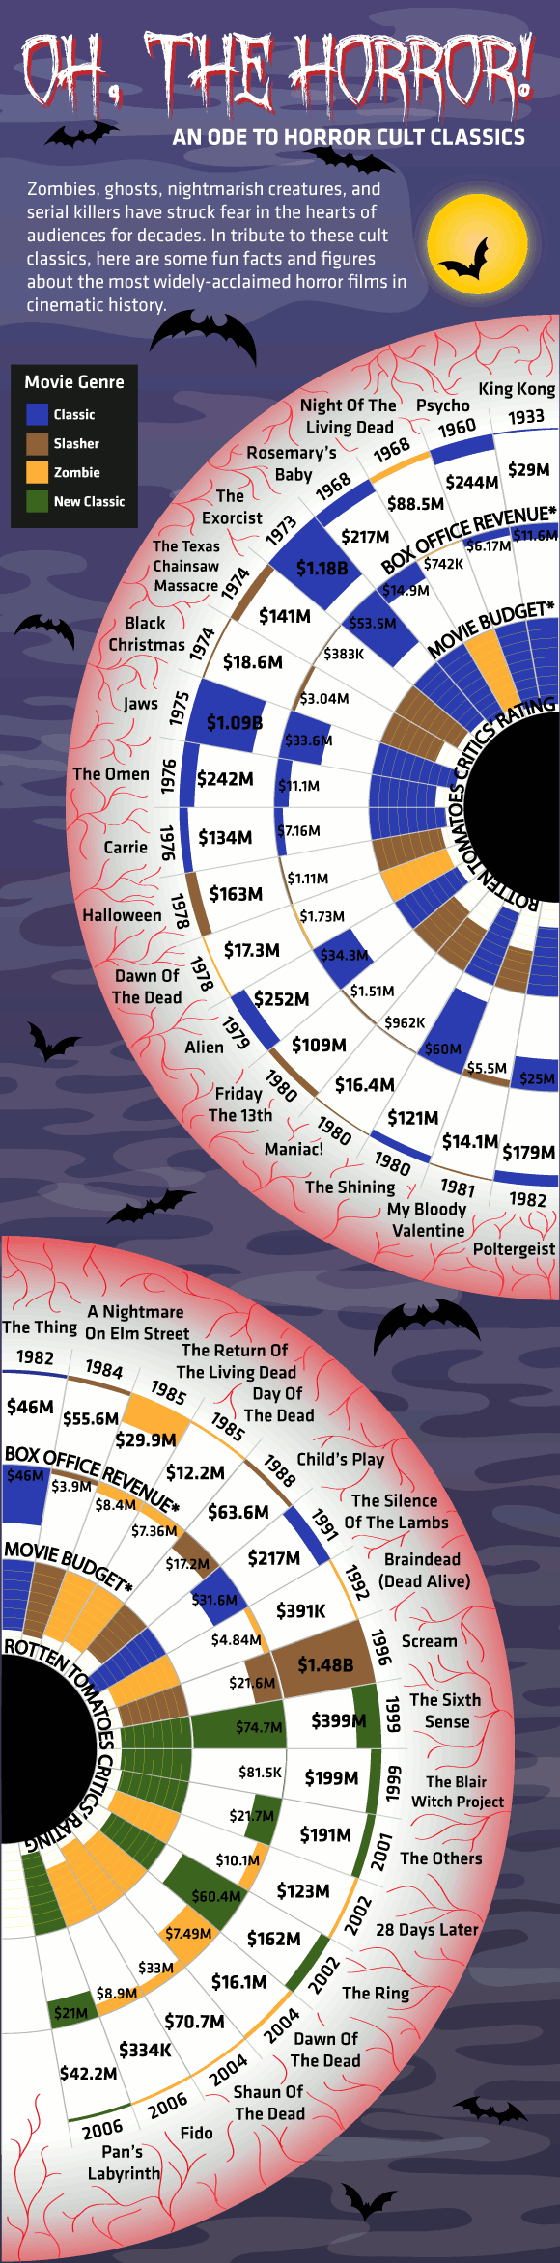 Infographic of Classic Horror Movies